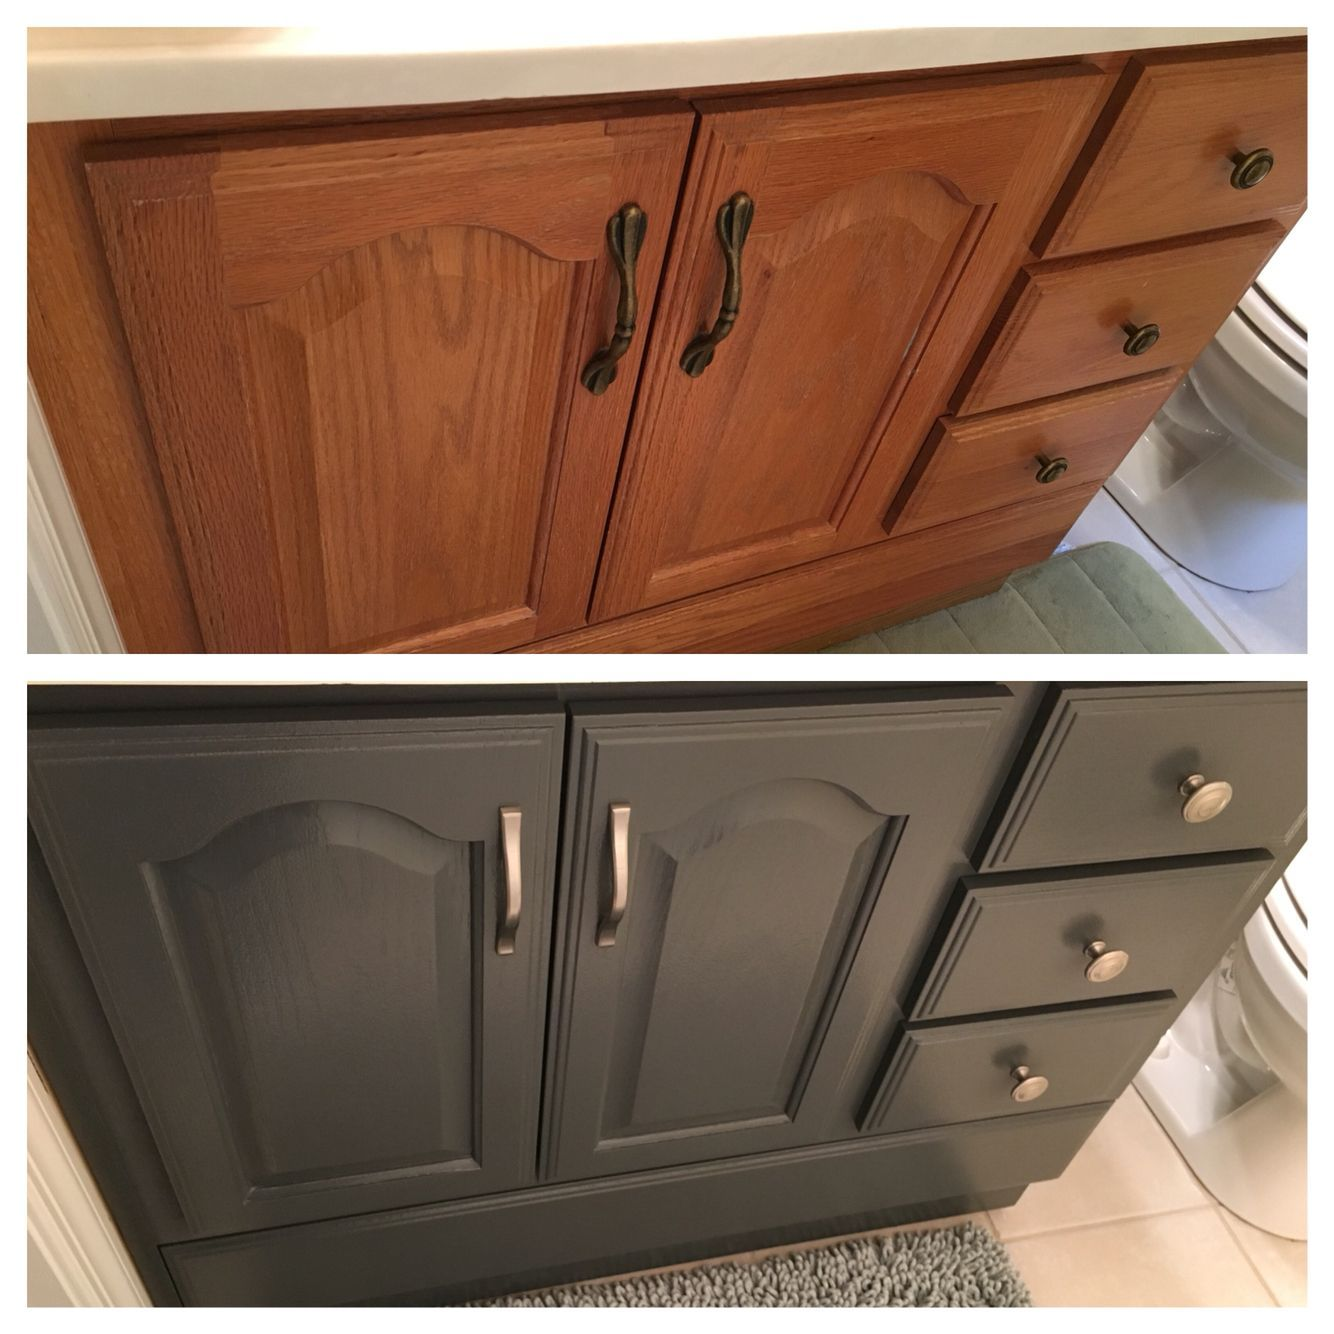 Sherwin Williams Peppercorn Before And After Vanity Cabinet Remodel Bedroom Home Remodeling Mold In Bathroom